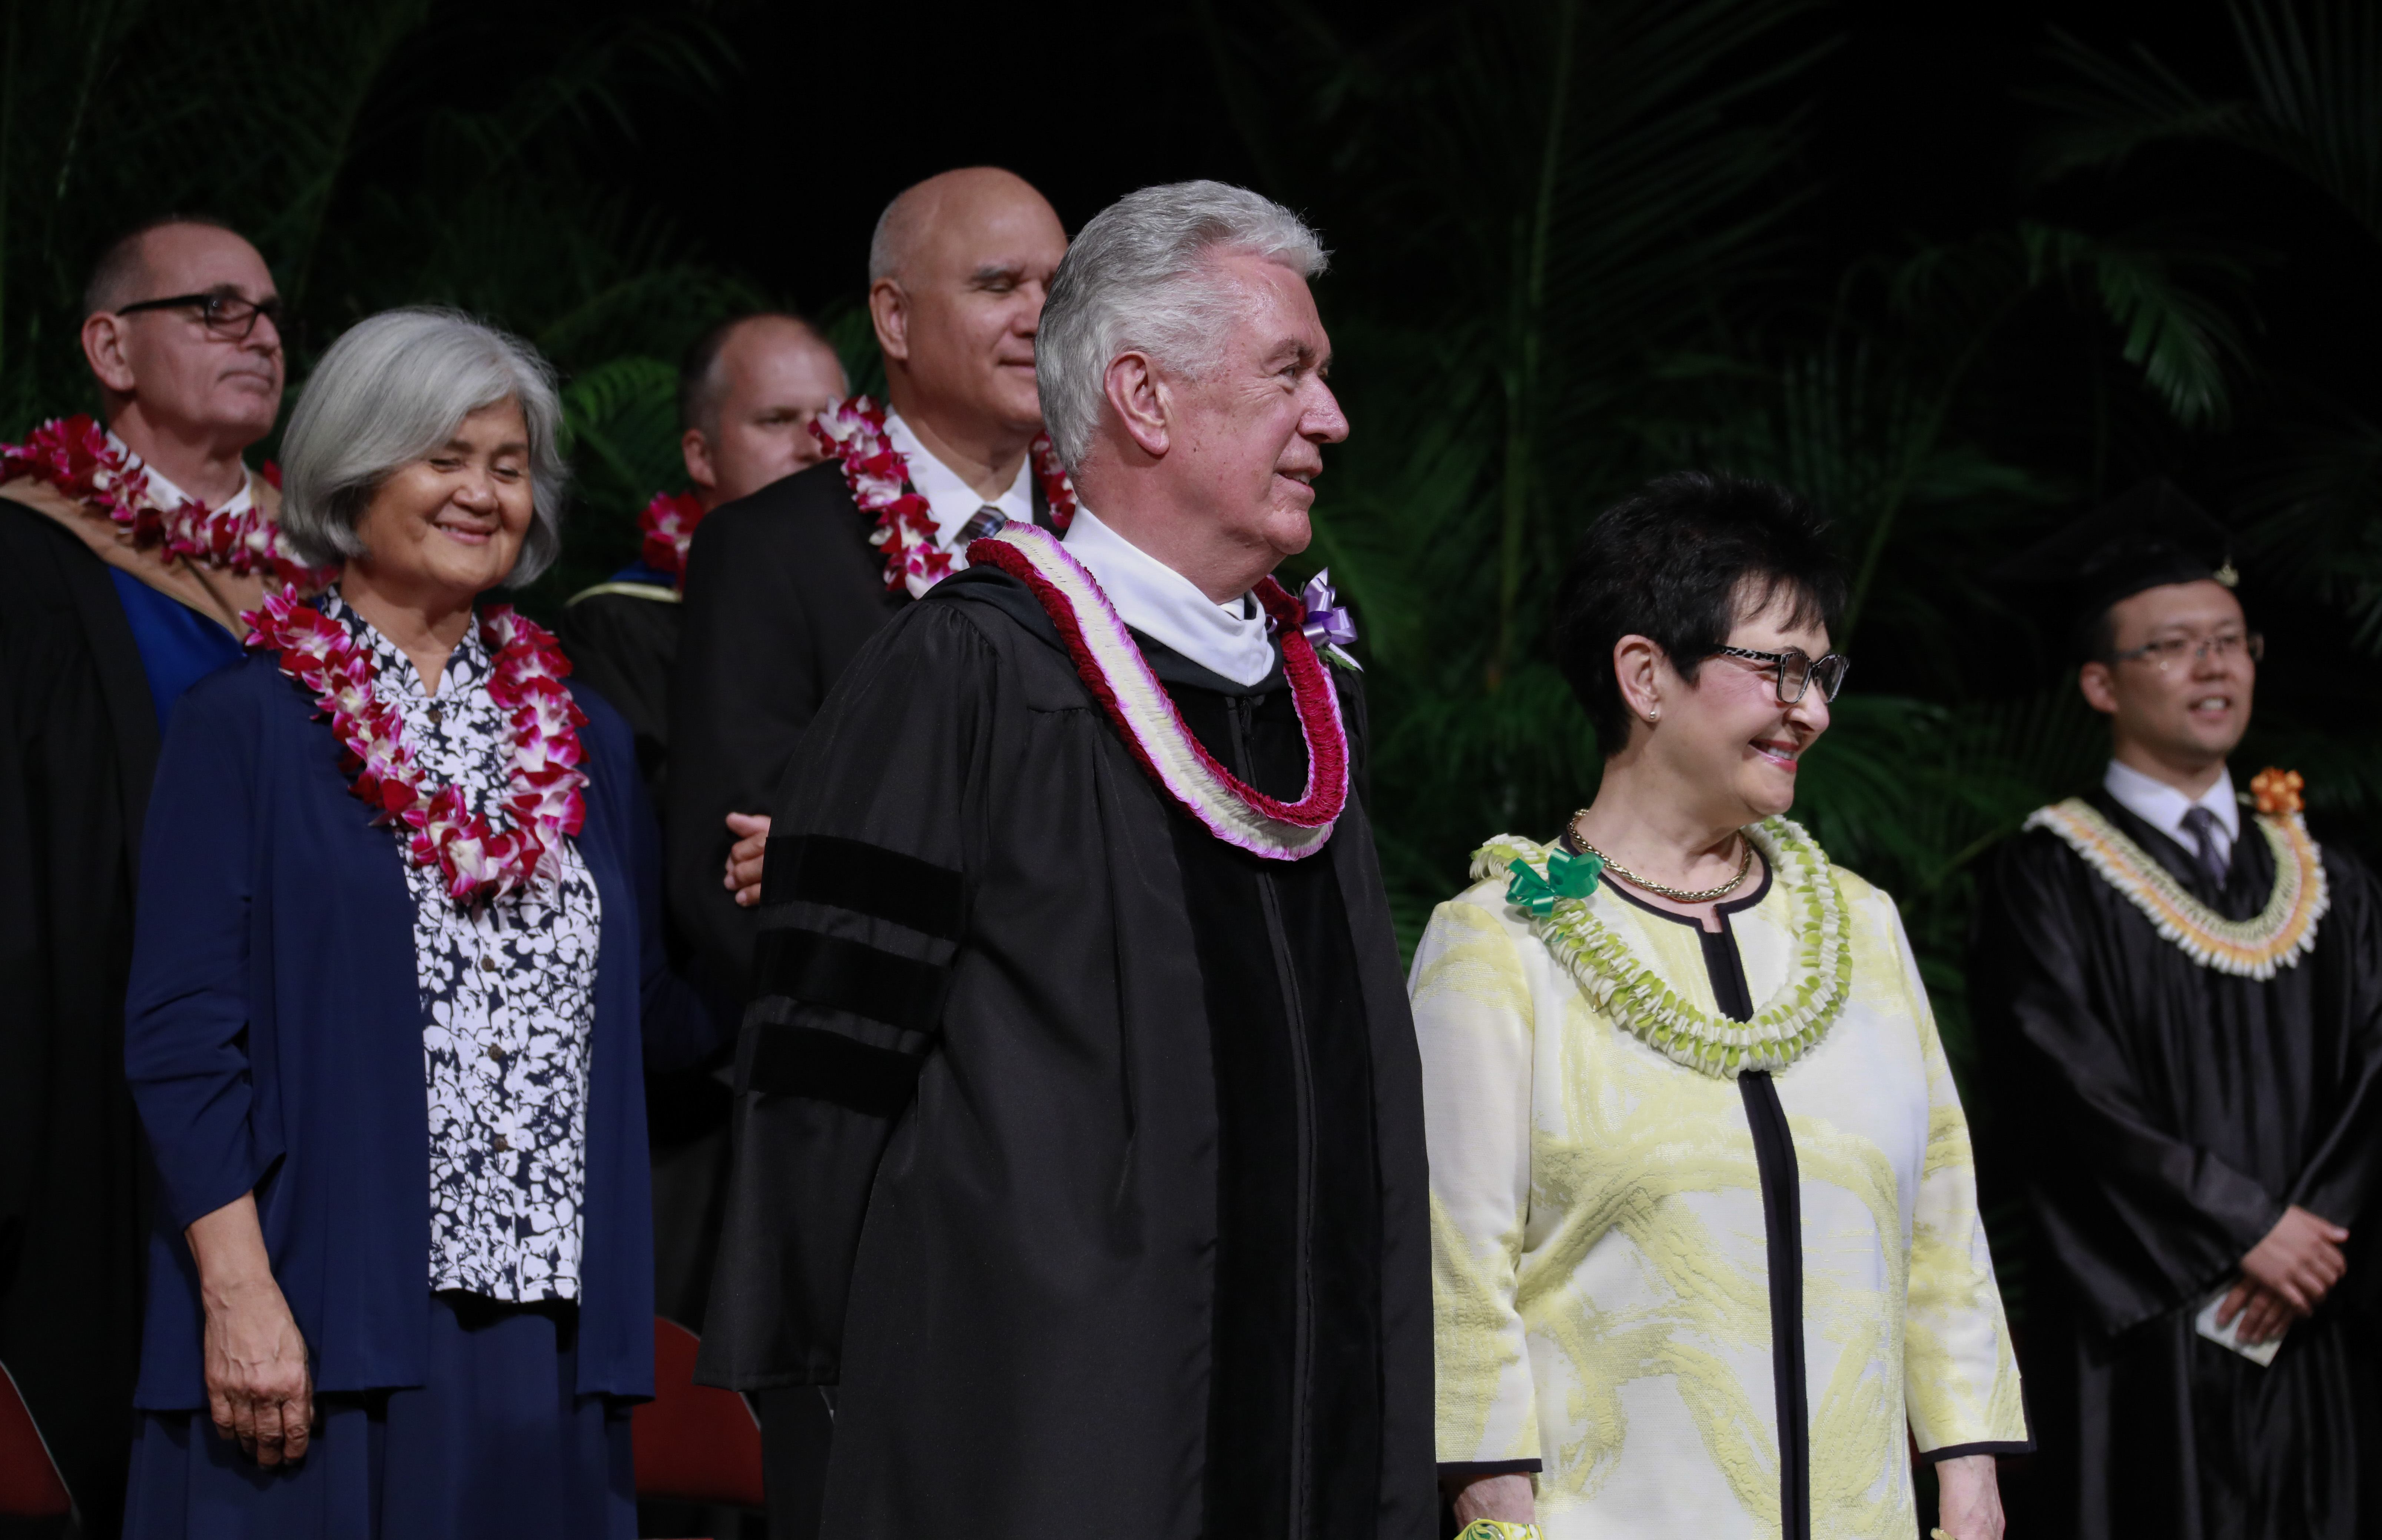 Elder Dieter F. Uchtdorf of the Quorum of the Twelve Apostles stands with his wife, Sister Harriet Uchtdorf, during BYU-Hawaii commencement exercises on Dec. 14.